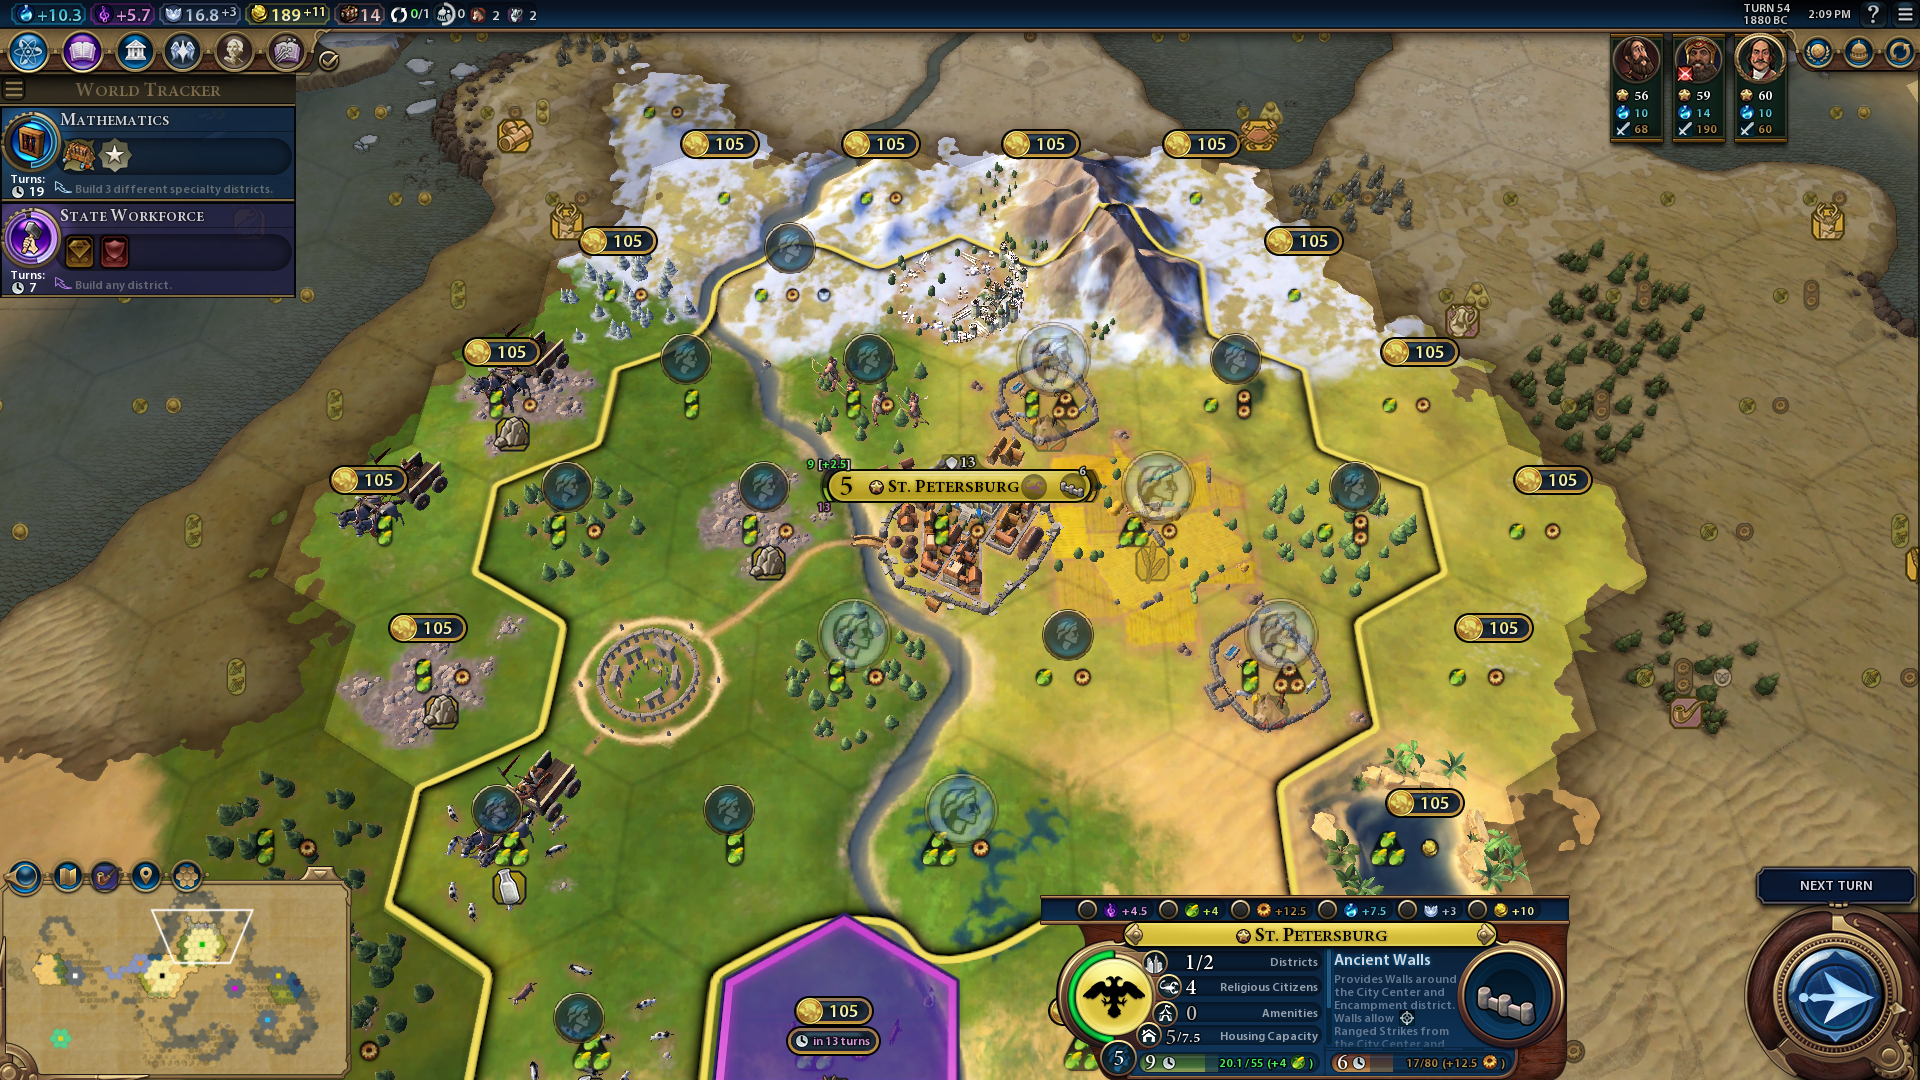 Civ VI(CQUI)] My city ui bugged out and now i can't change